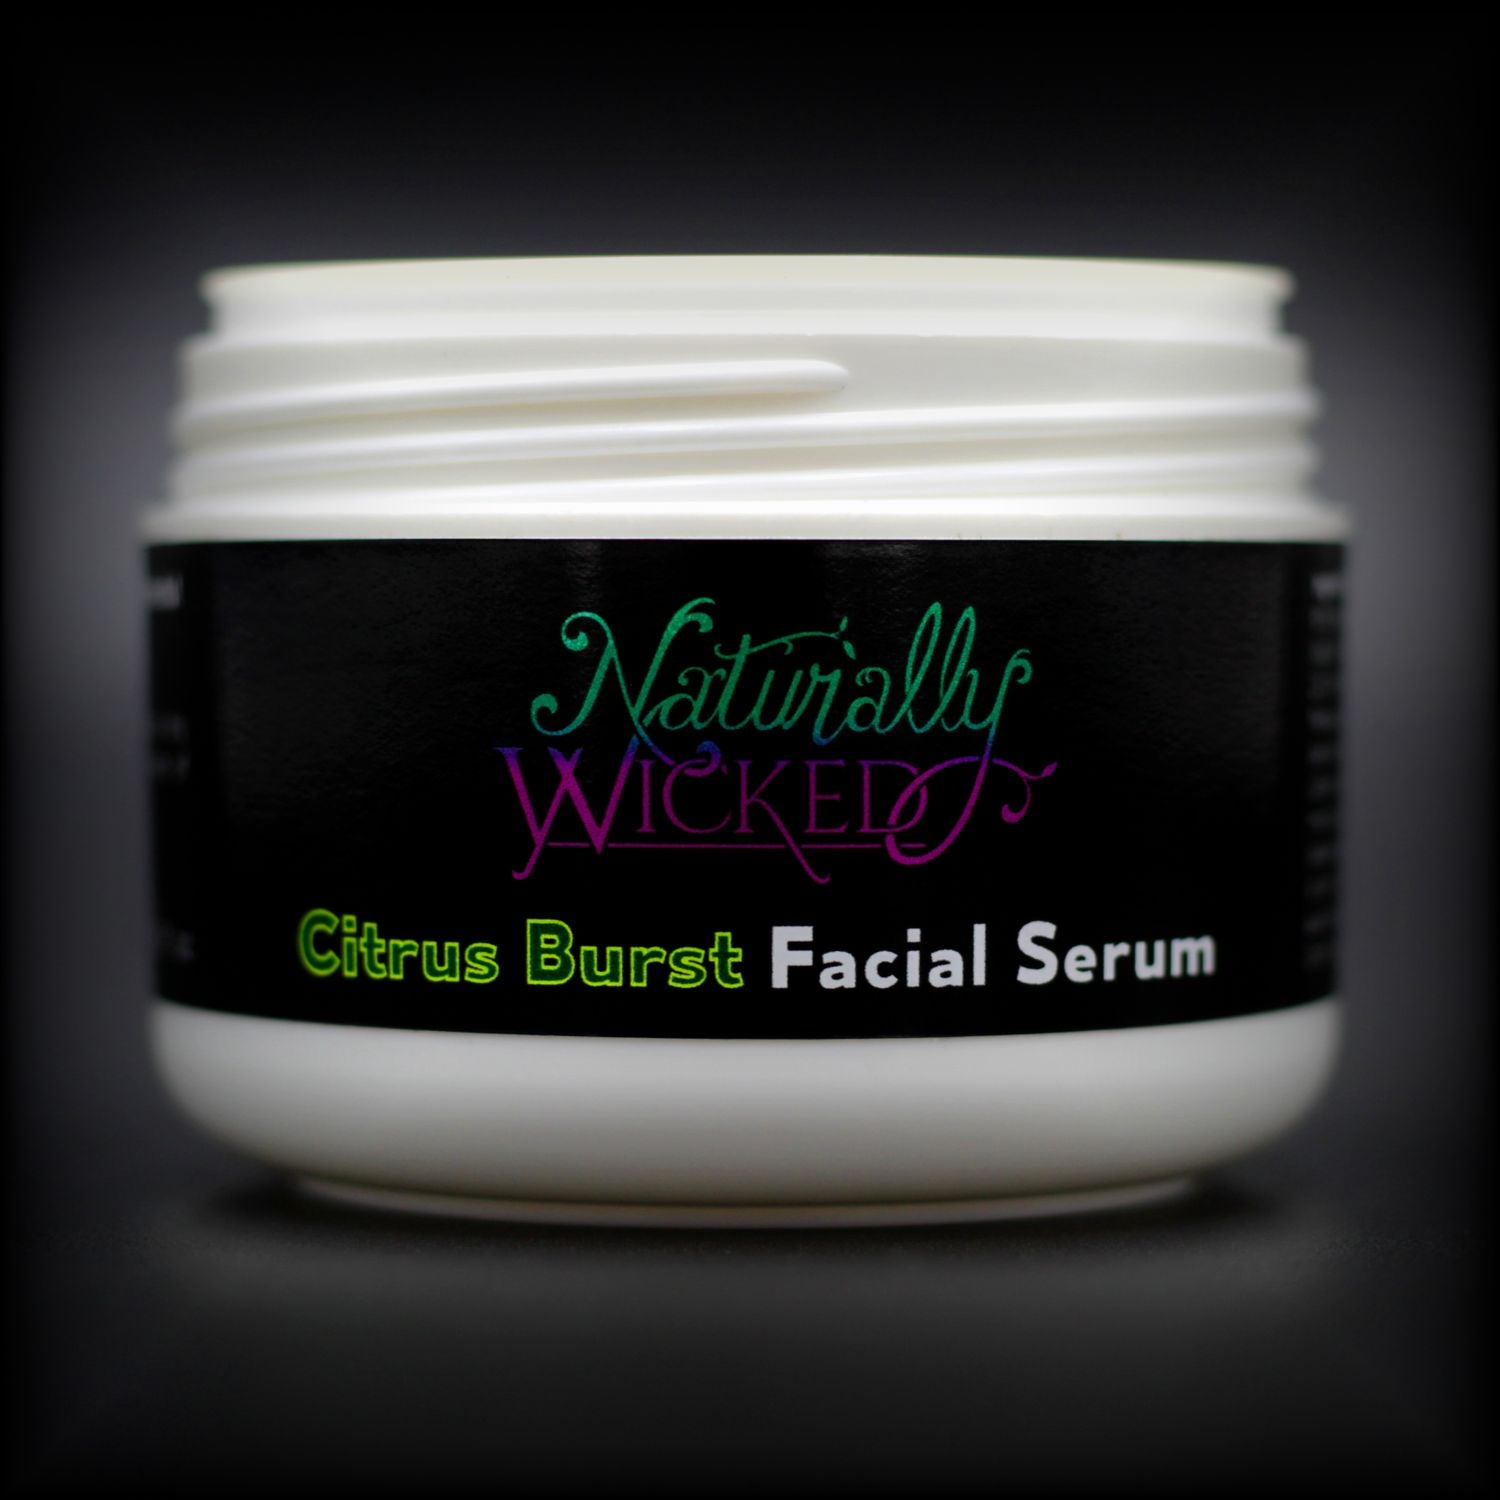 Naturally Wicked Citrus Burst Facial Serum Container Without Lid, Exposing Screw Connection & Seal